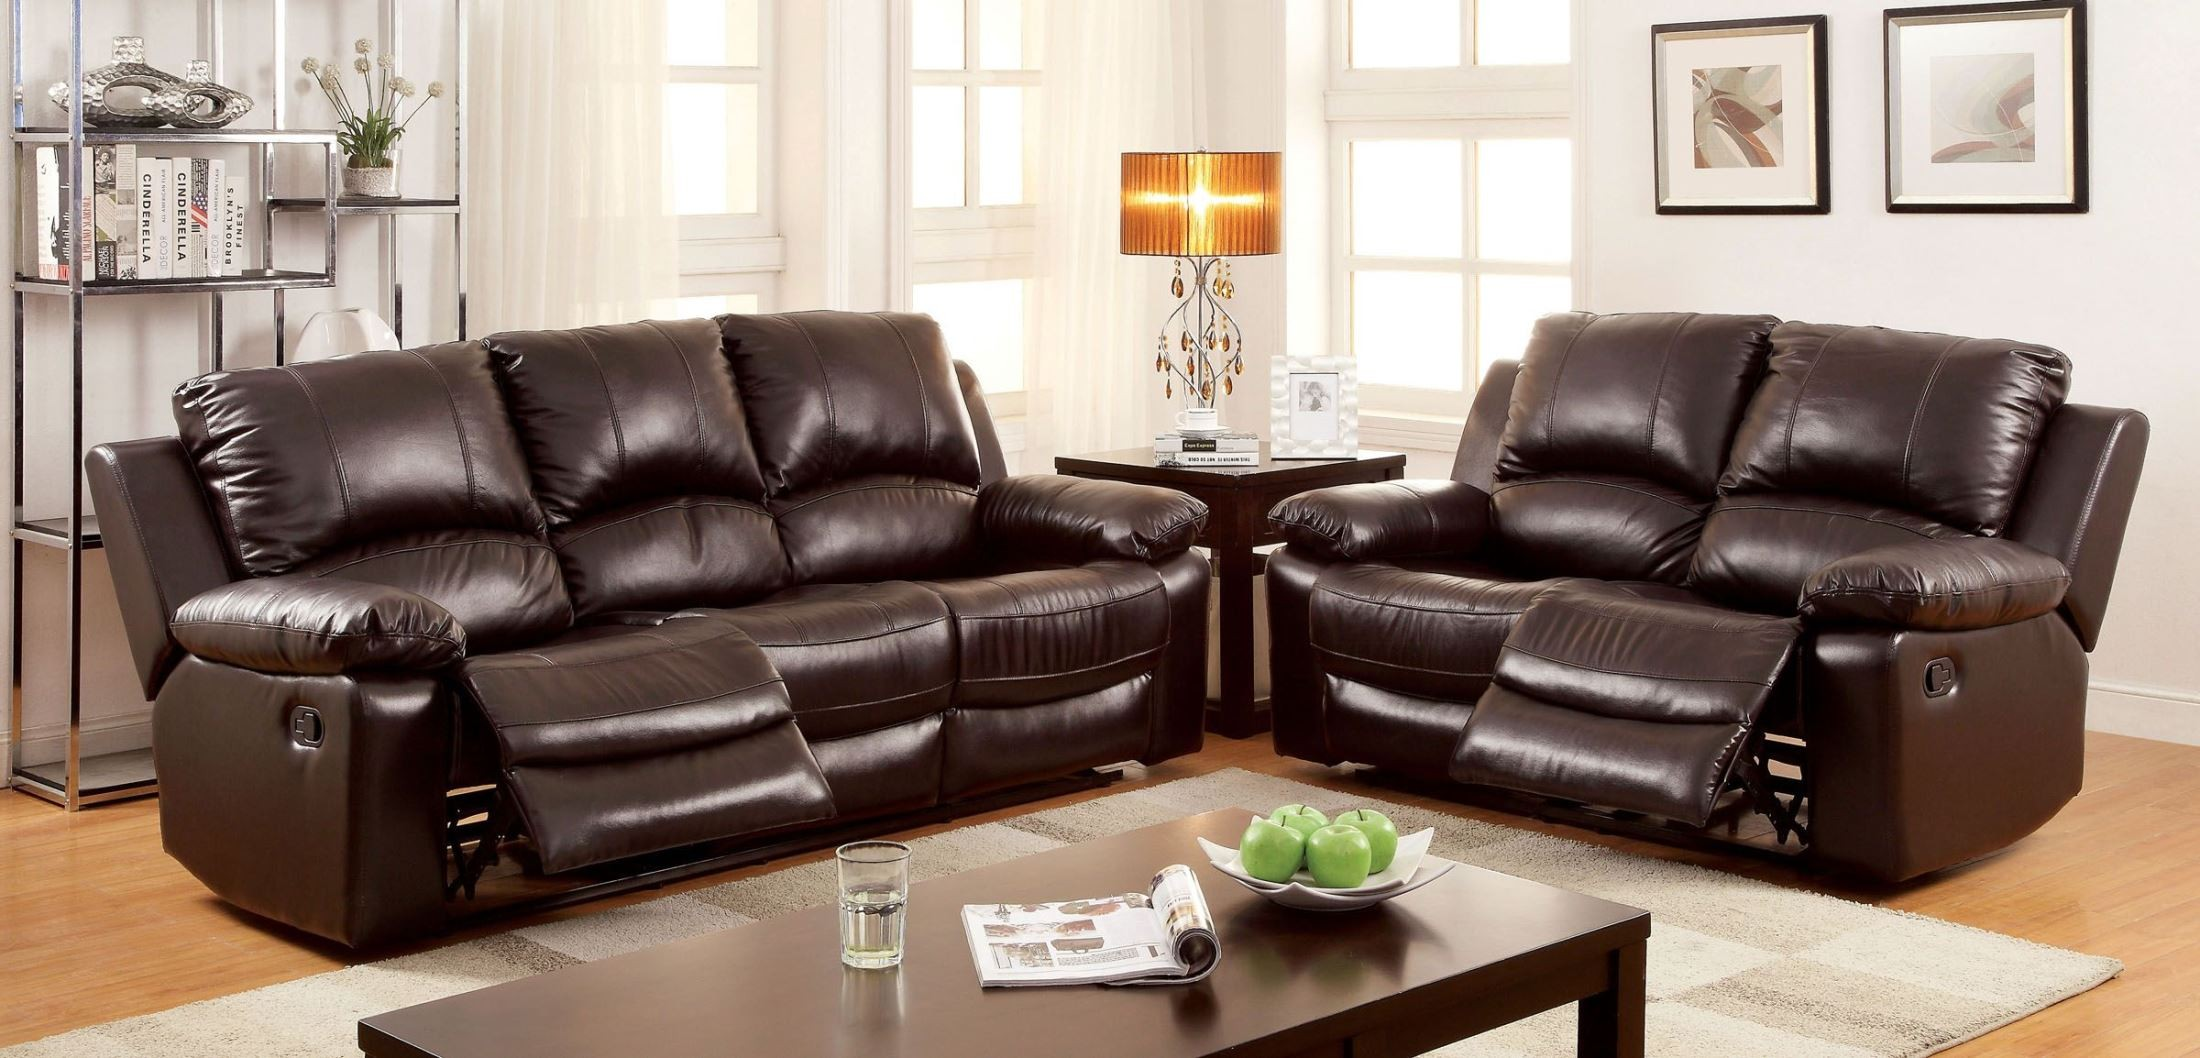 Davenport Top Grain Leather Match Reclining Sofa from Furniture of